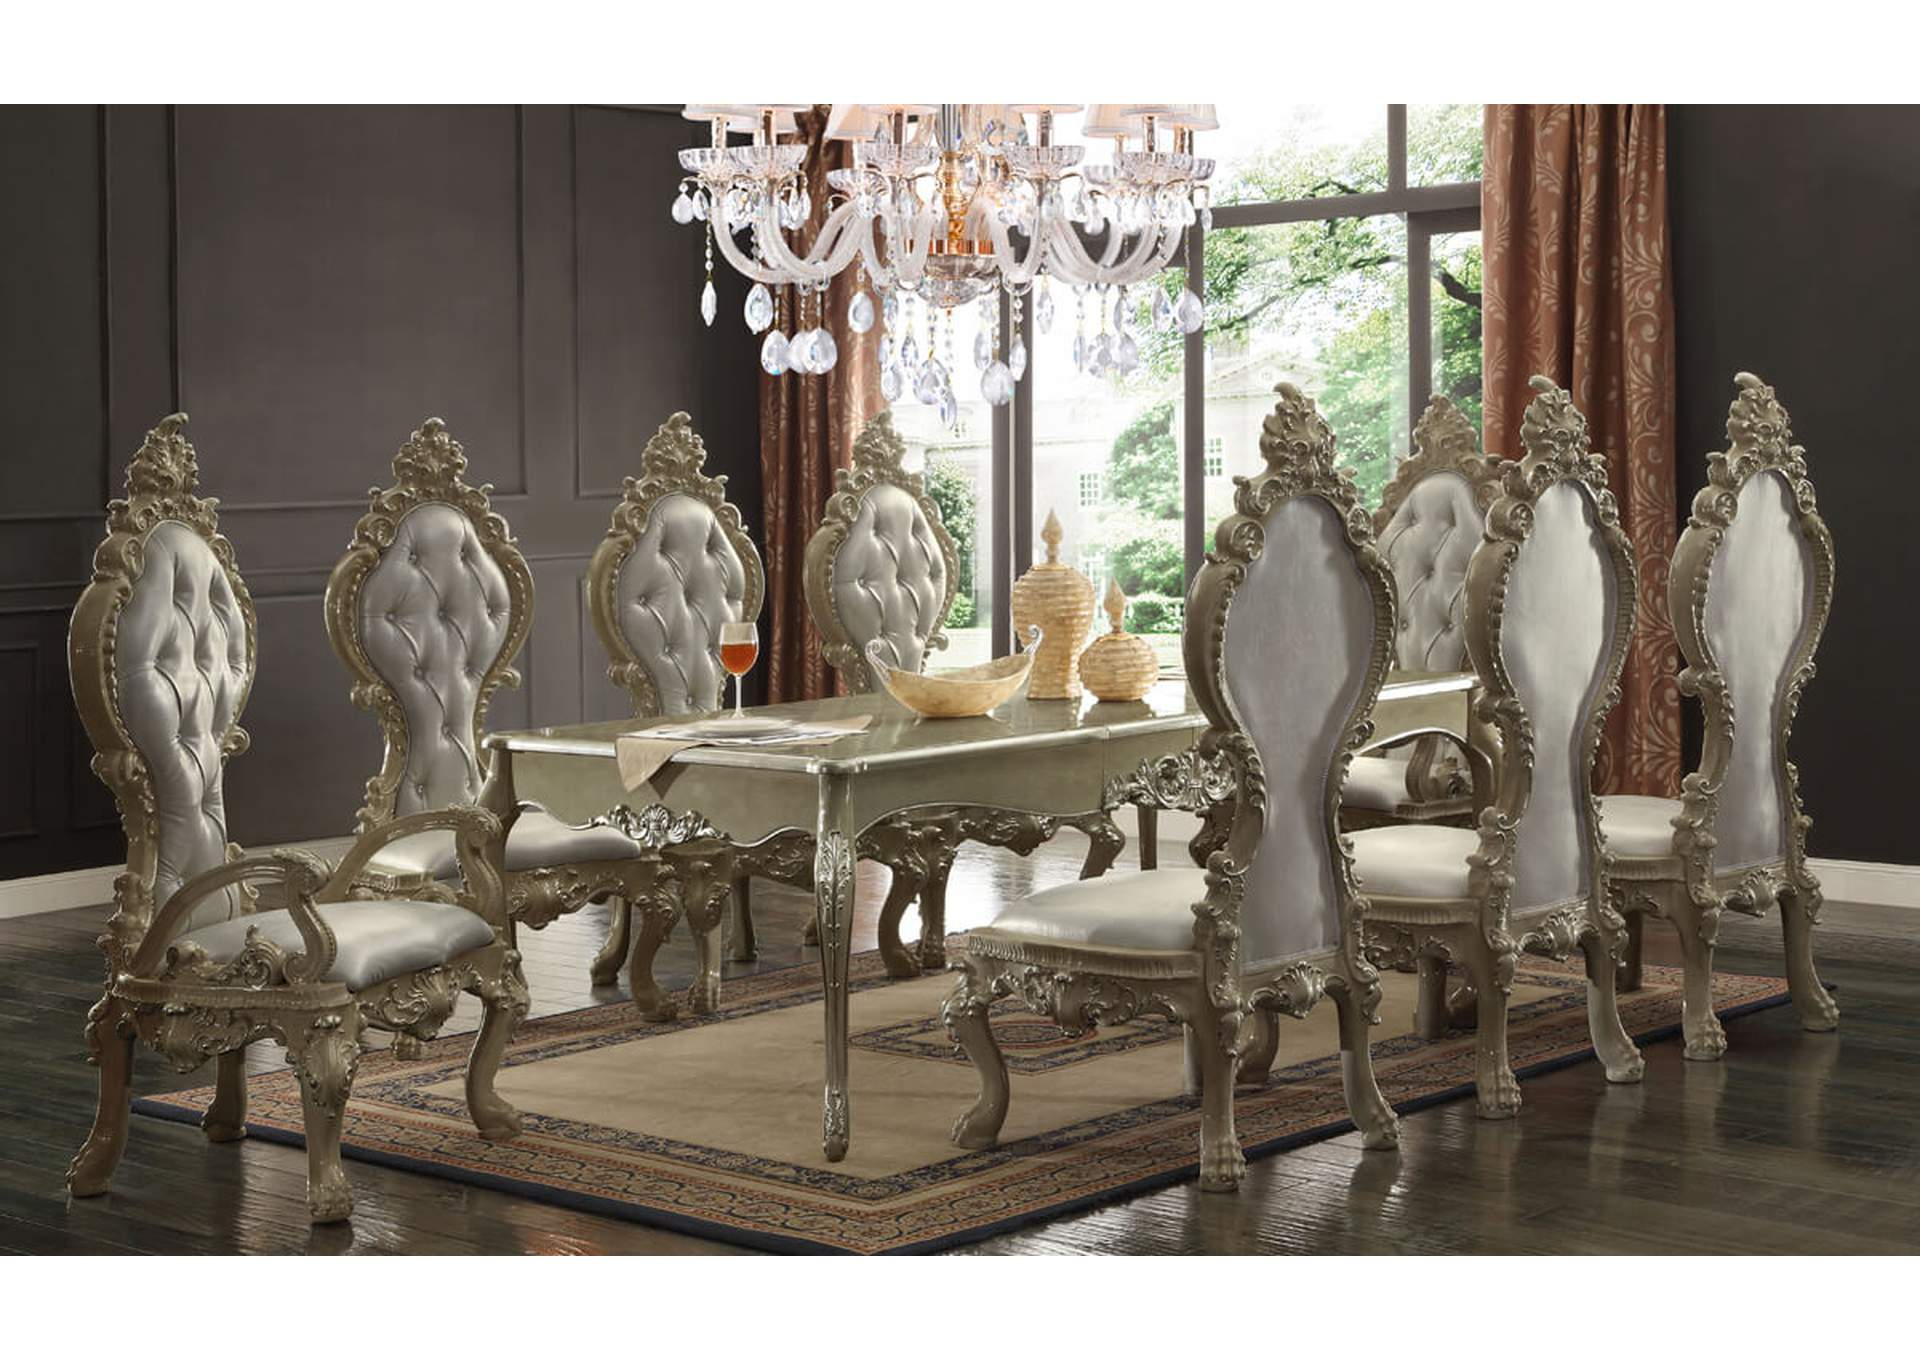 Antique White with Metallic Silver Highlights Dining Table w/2 Arm Chairs & 6 Side Chairs,Homey Design